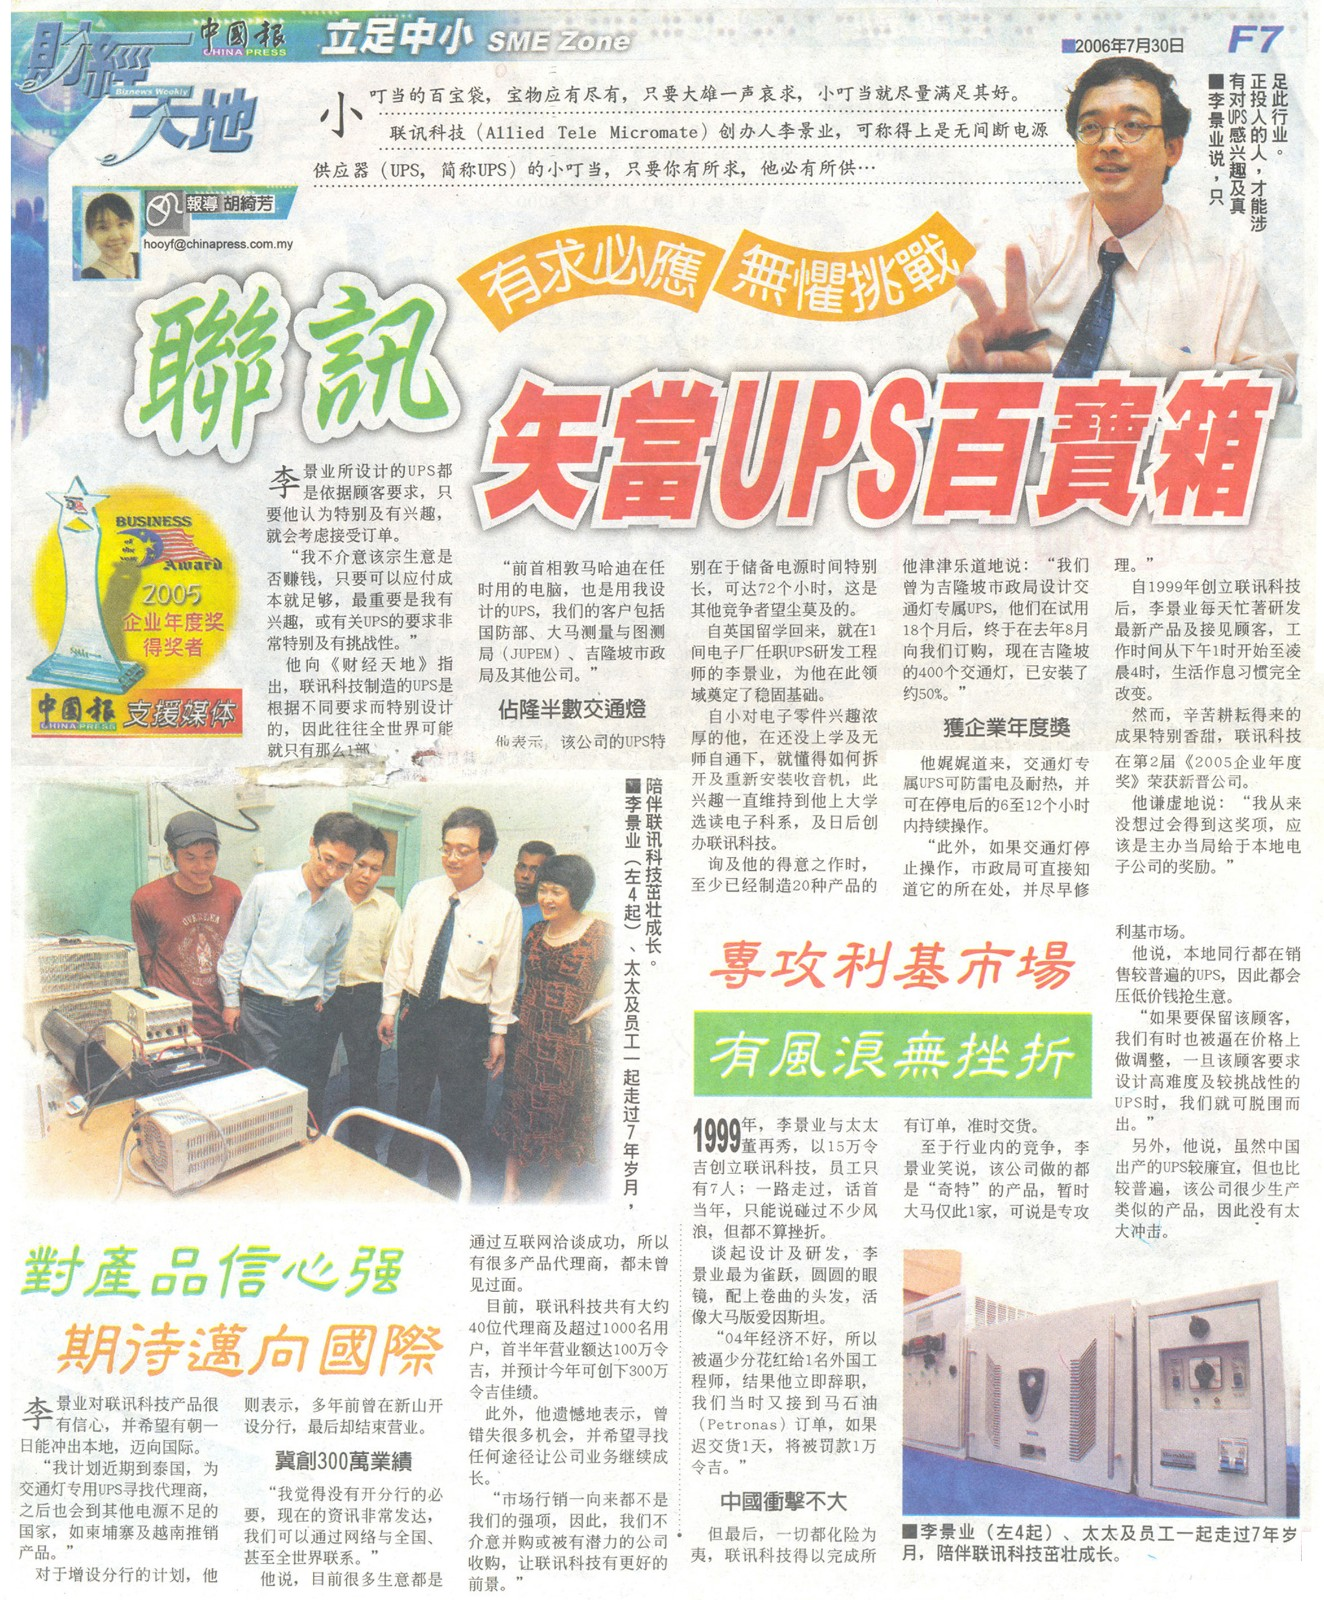 Mr. Desmond Lee in an interview and featured in the Malaysia's leading Chinese newspaper China PressChina Press (30 July 2006 issue)